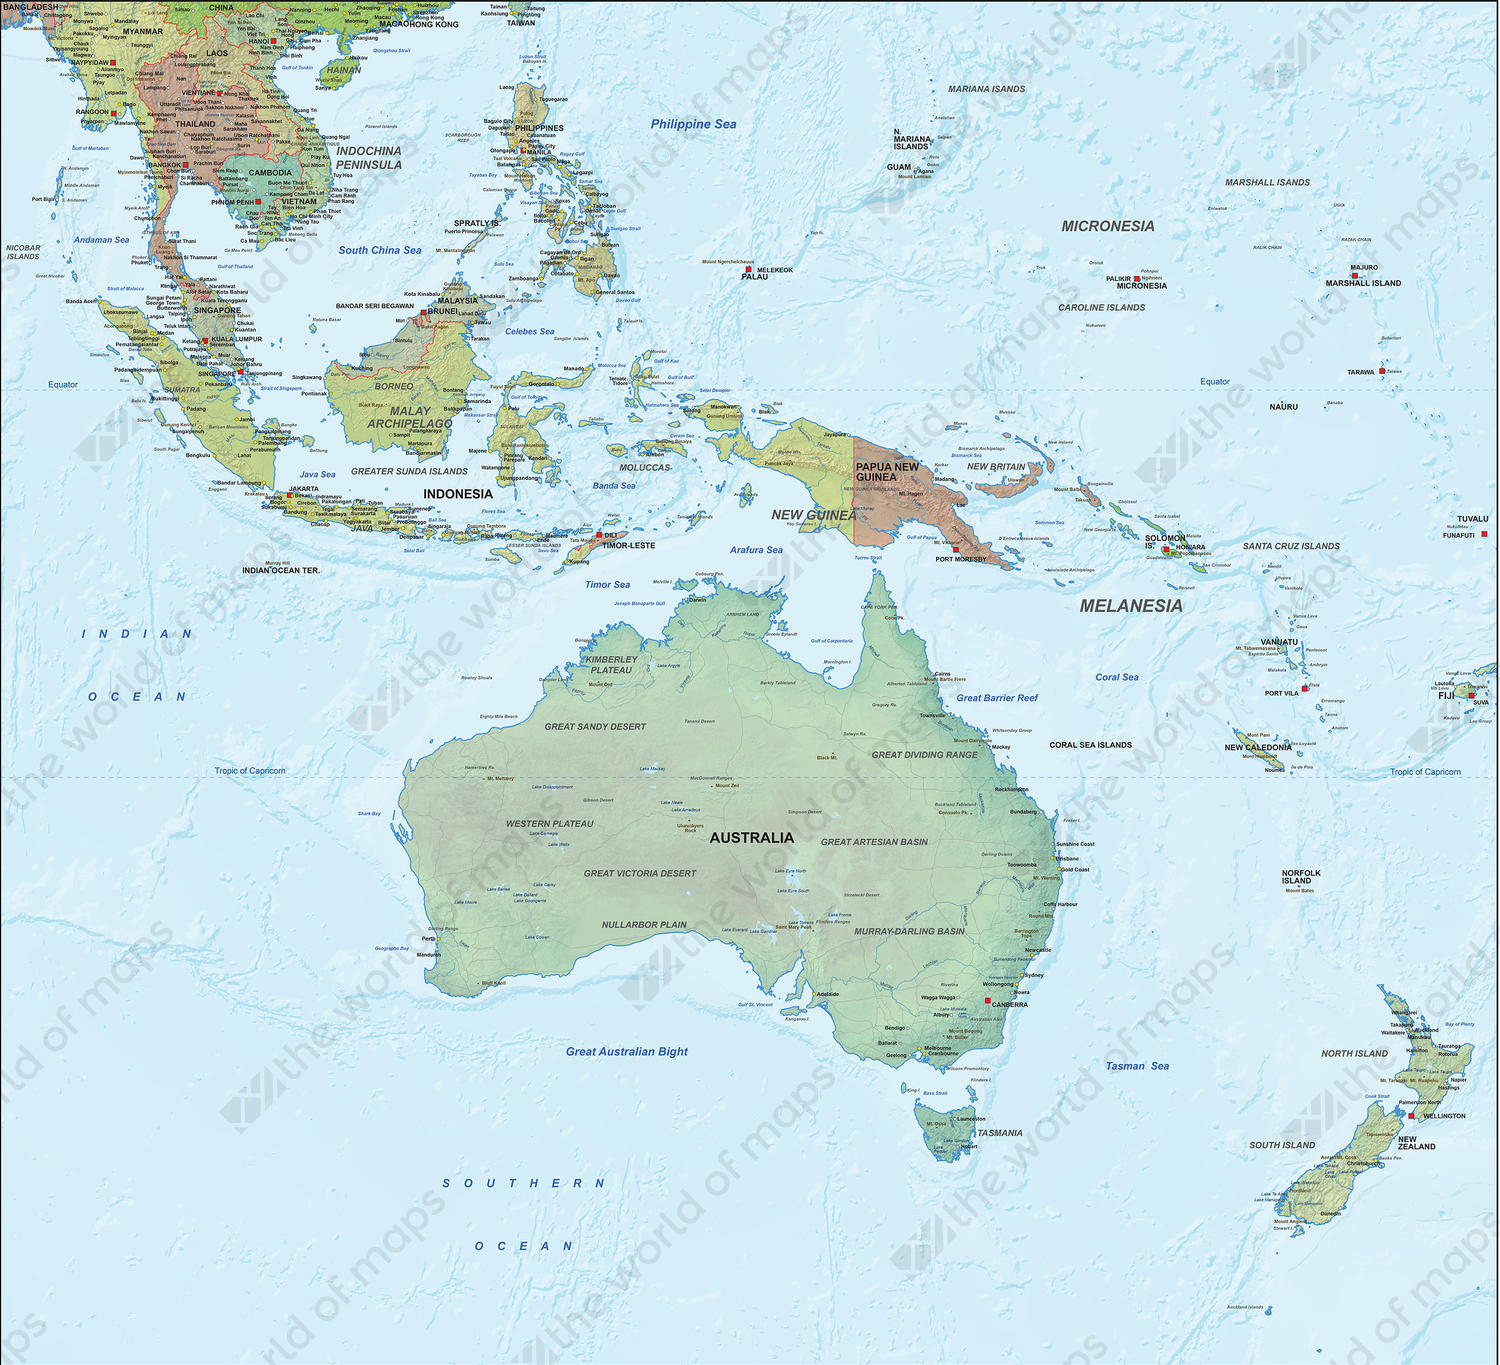 Digital Physical Map Oceania with relief 1296 The World of Mapscom